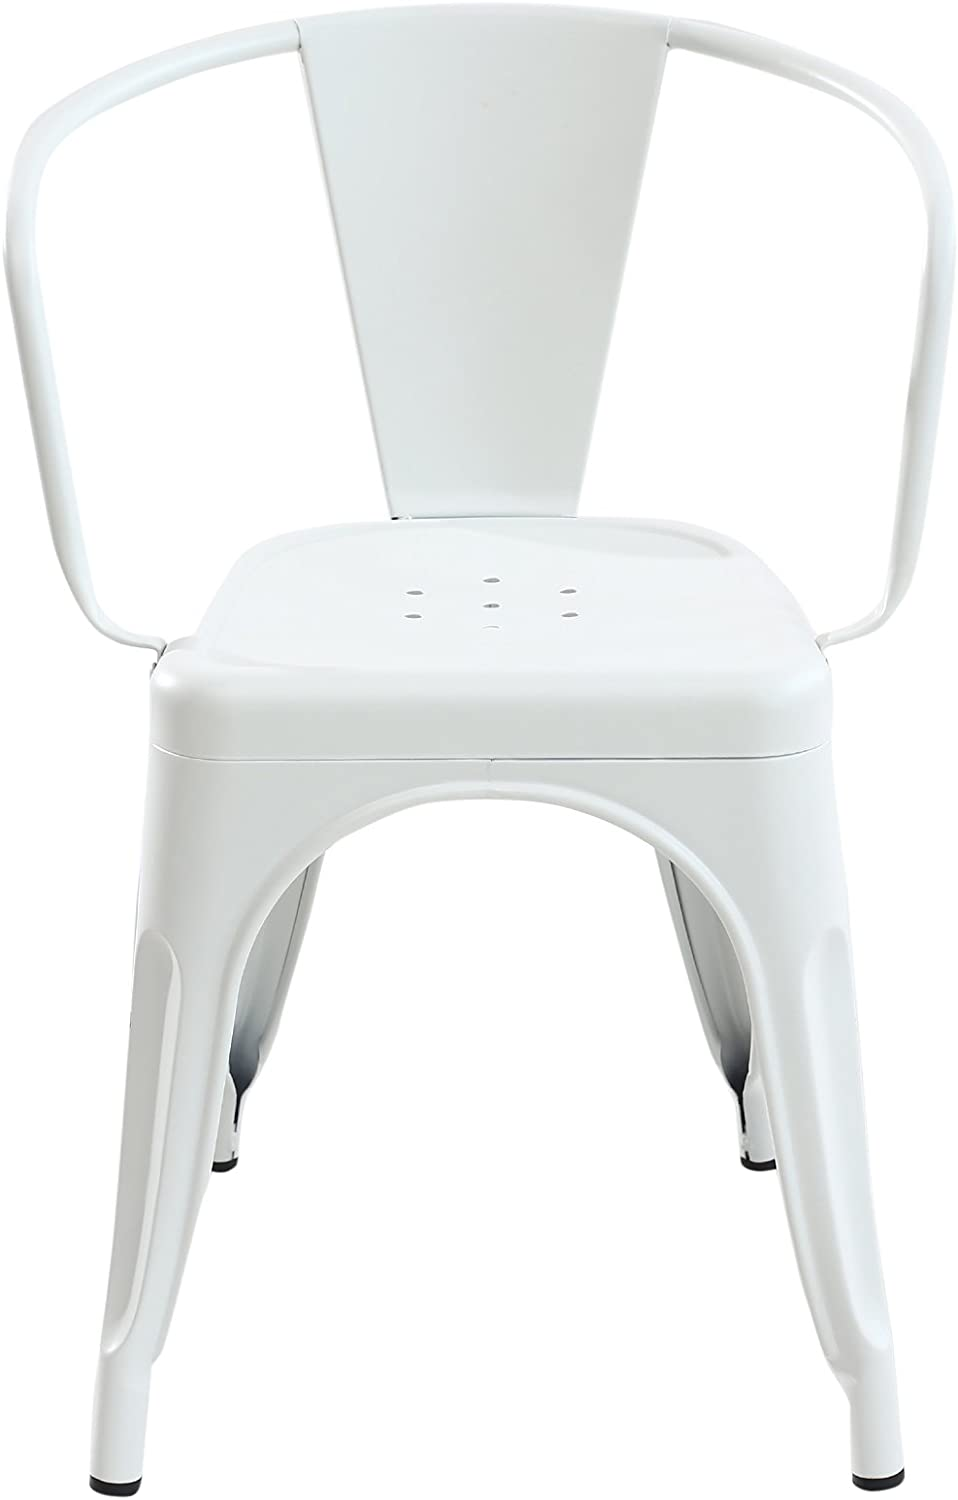 Poly and Bark Trattoria Arm Chair in White